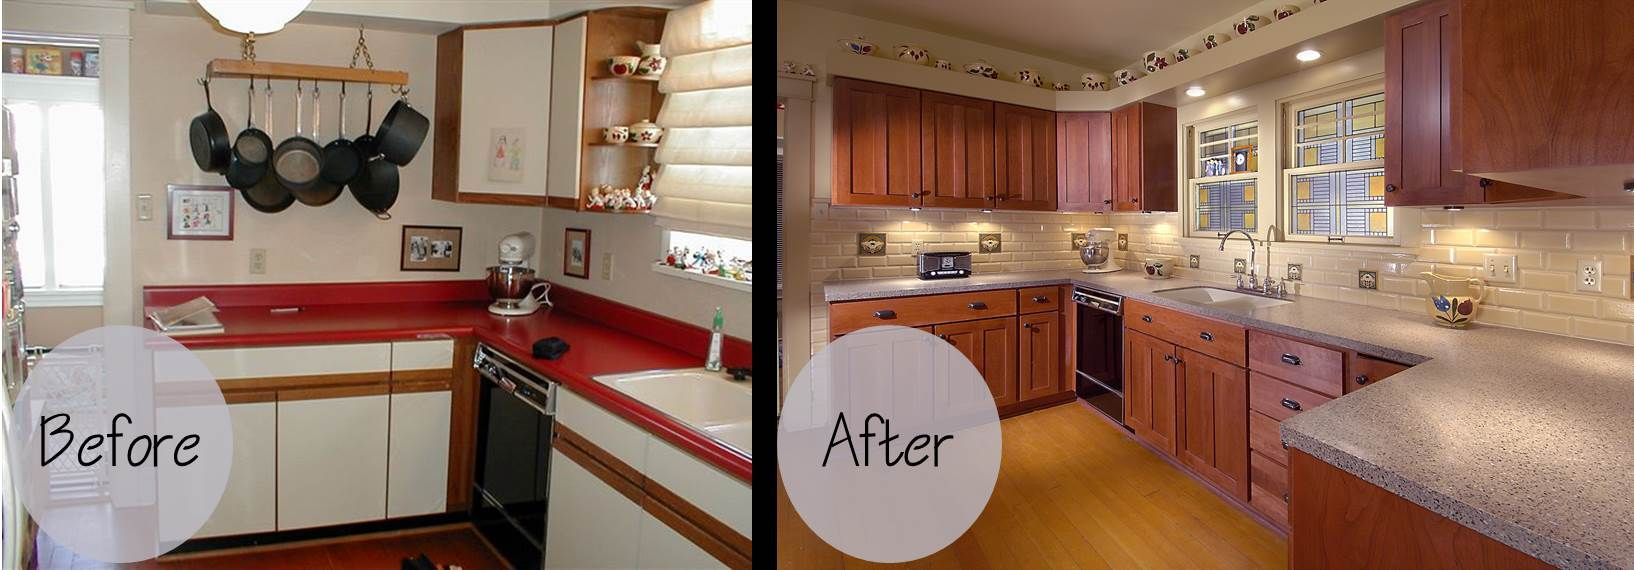 cabinet refacing gallery from How Do You Resurface Kitchen Cabinets ...